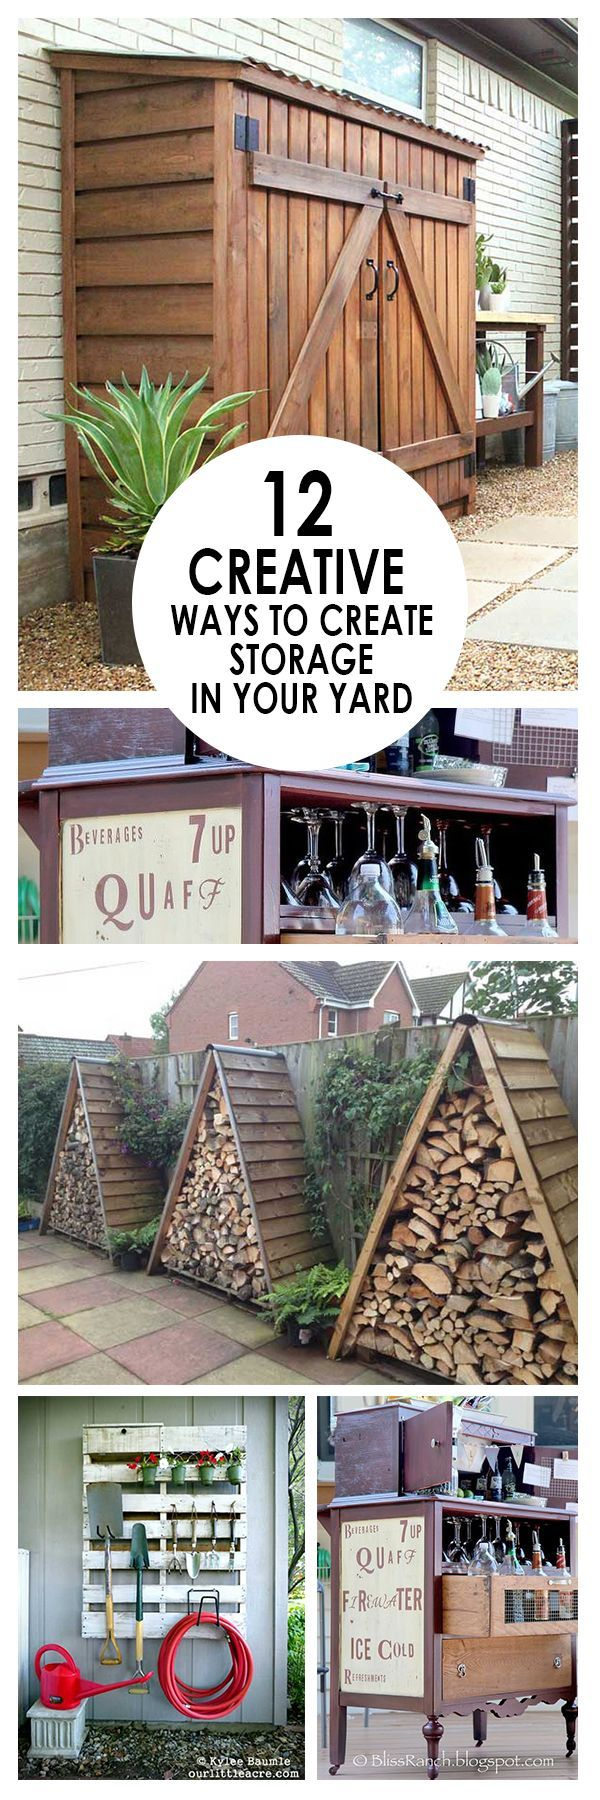 12 Creative Ways to Create Storage in Your Yard